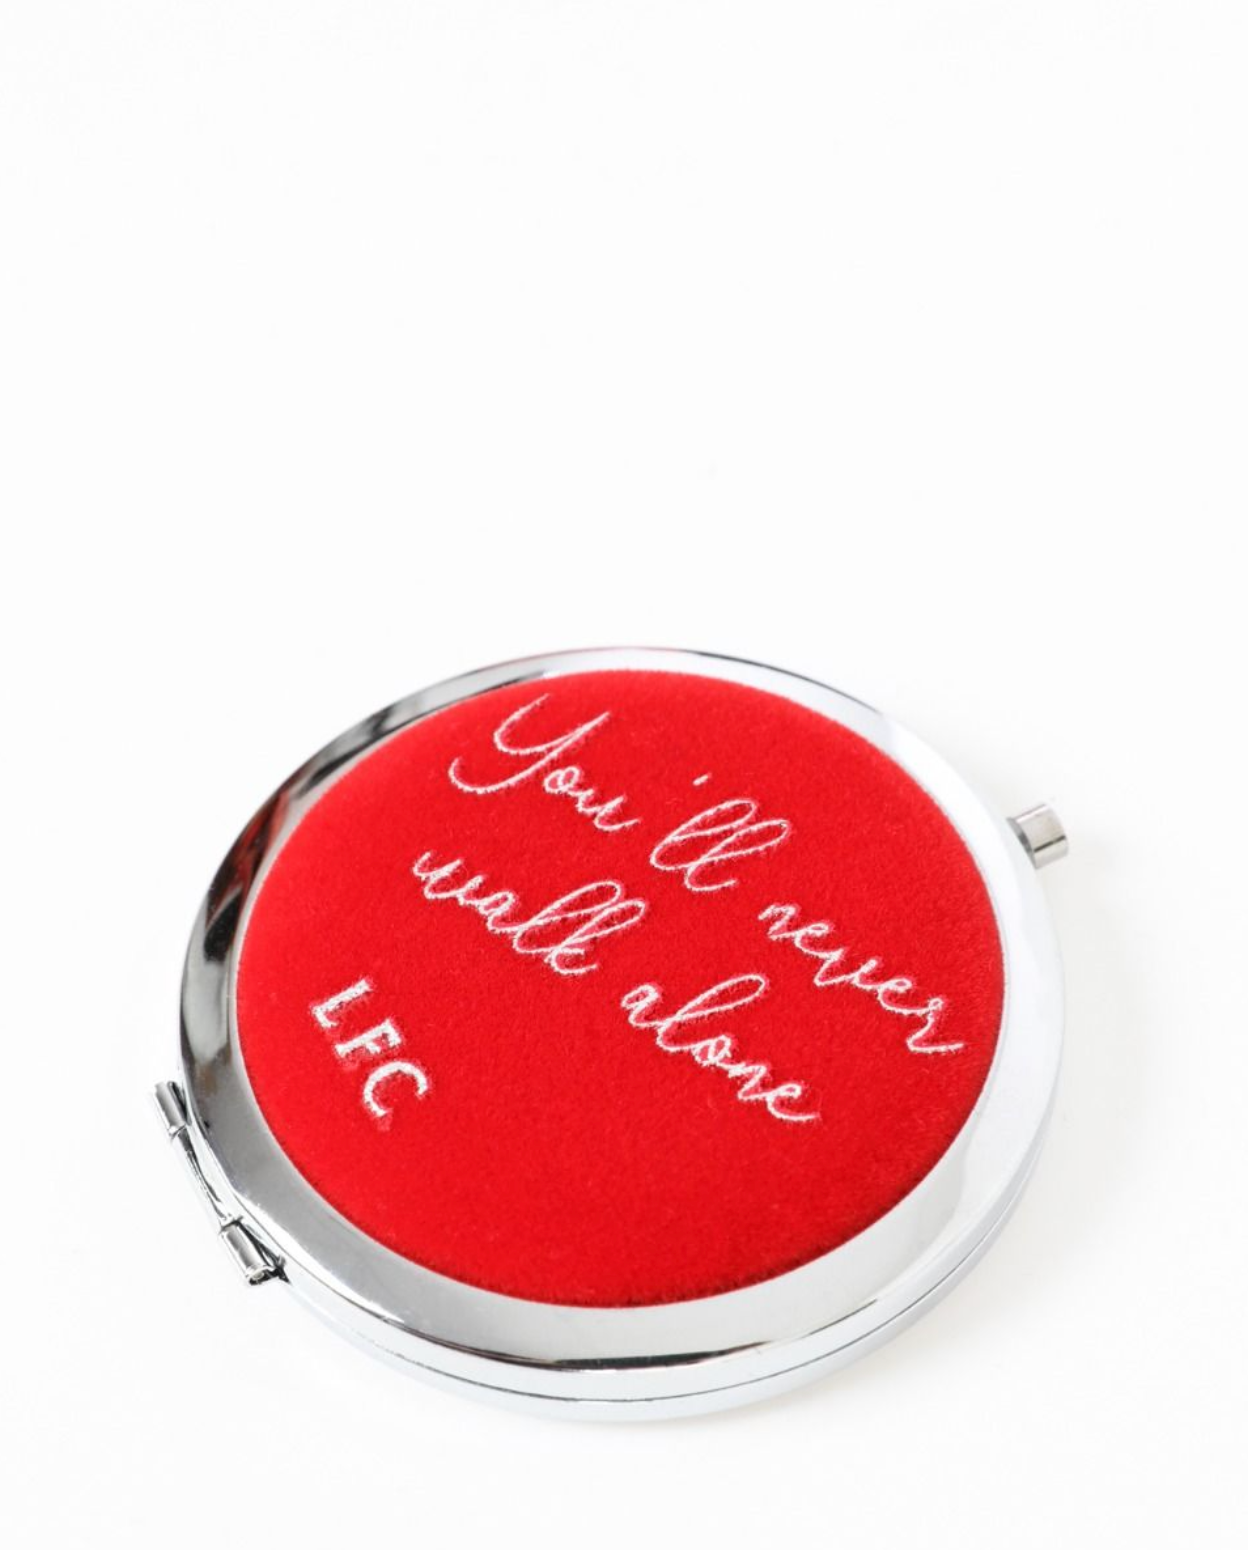 Liverpool FC Compact Mirror - Anfield Shop